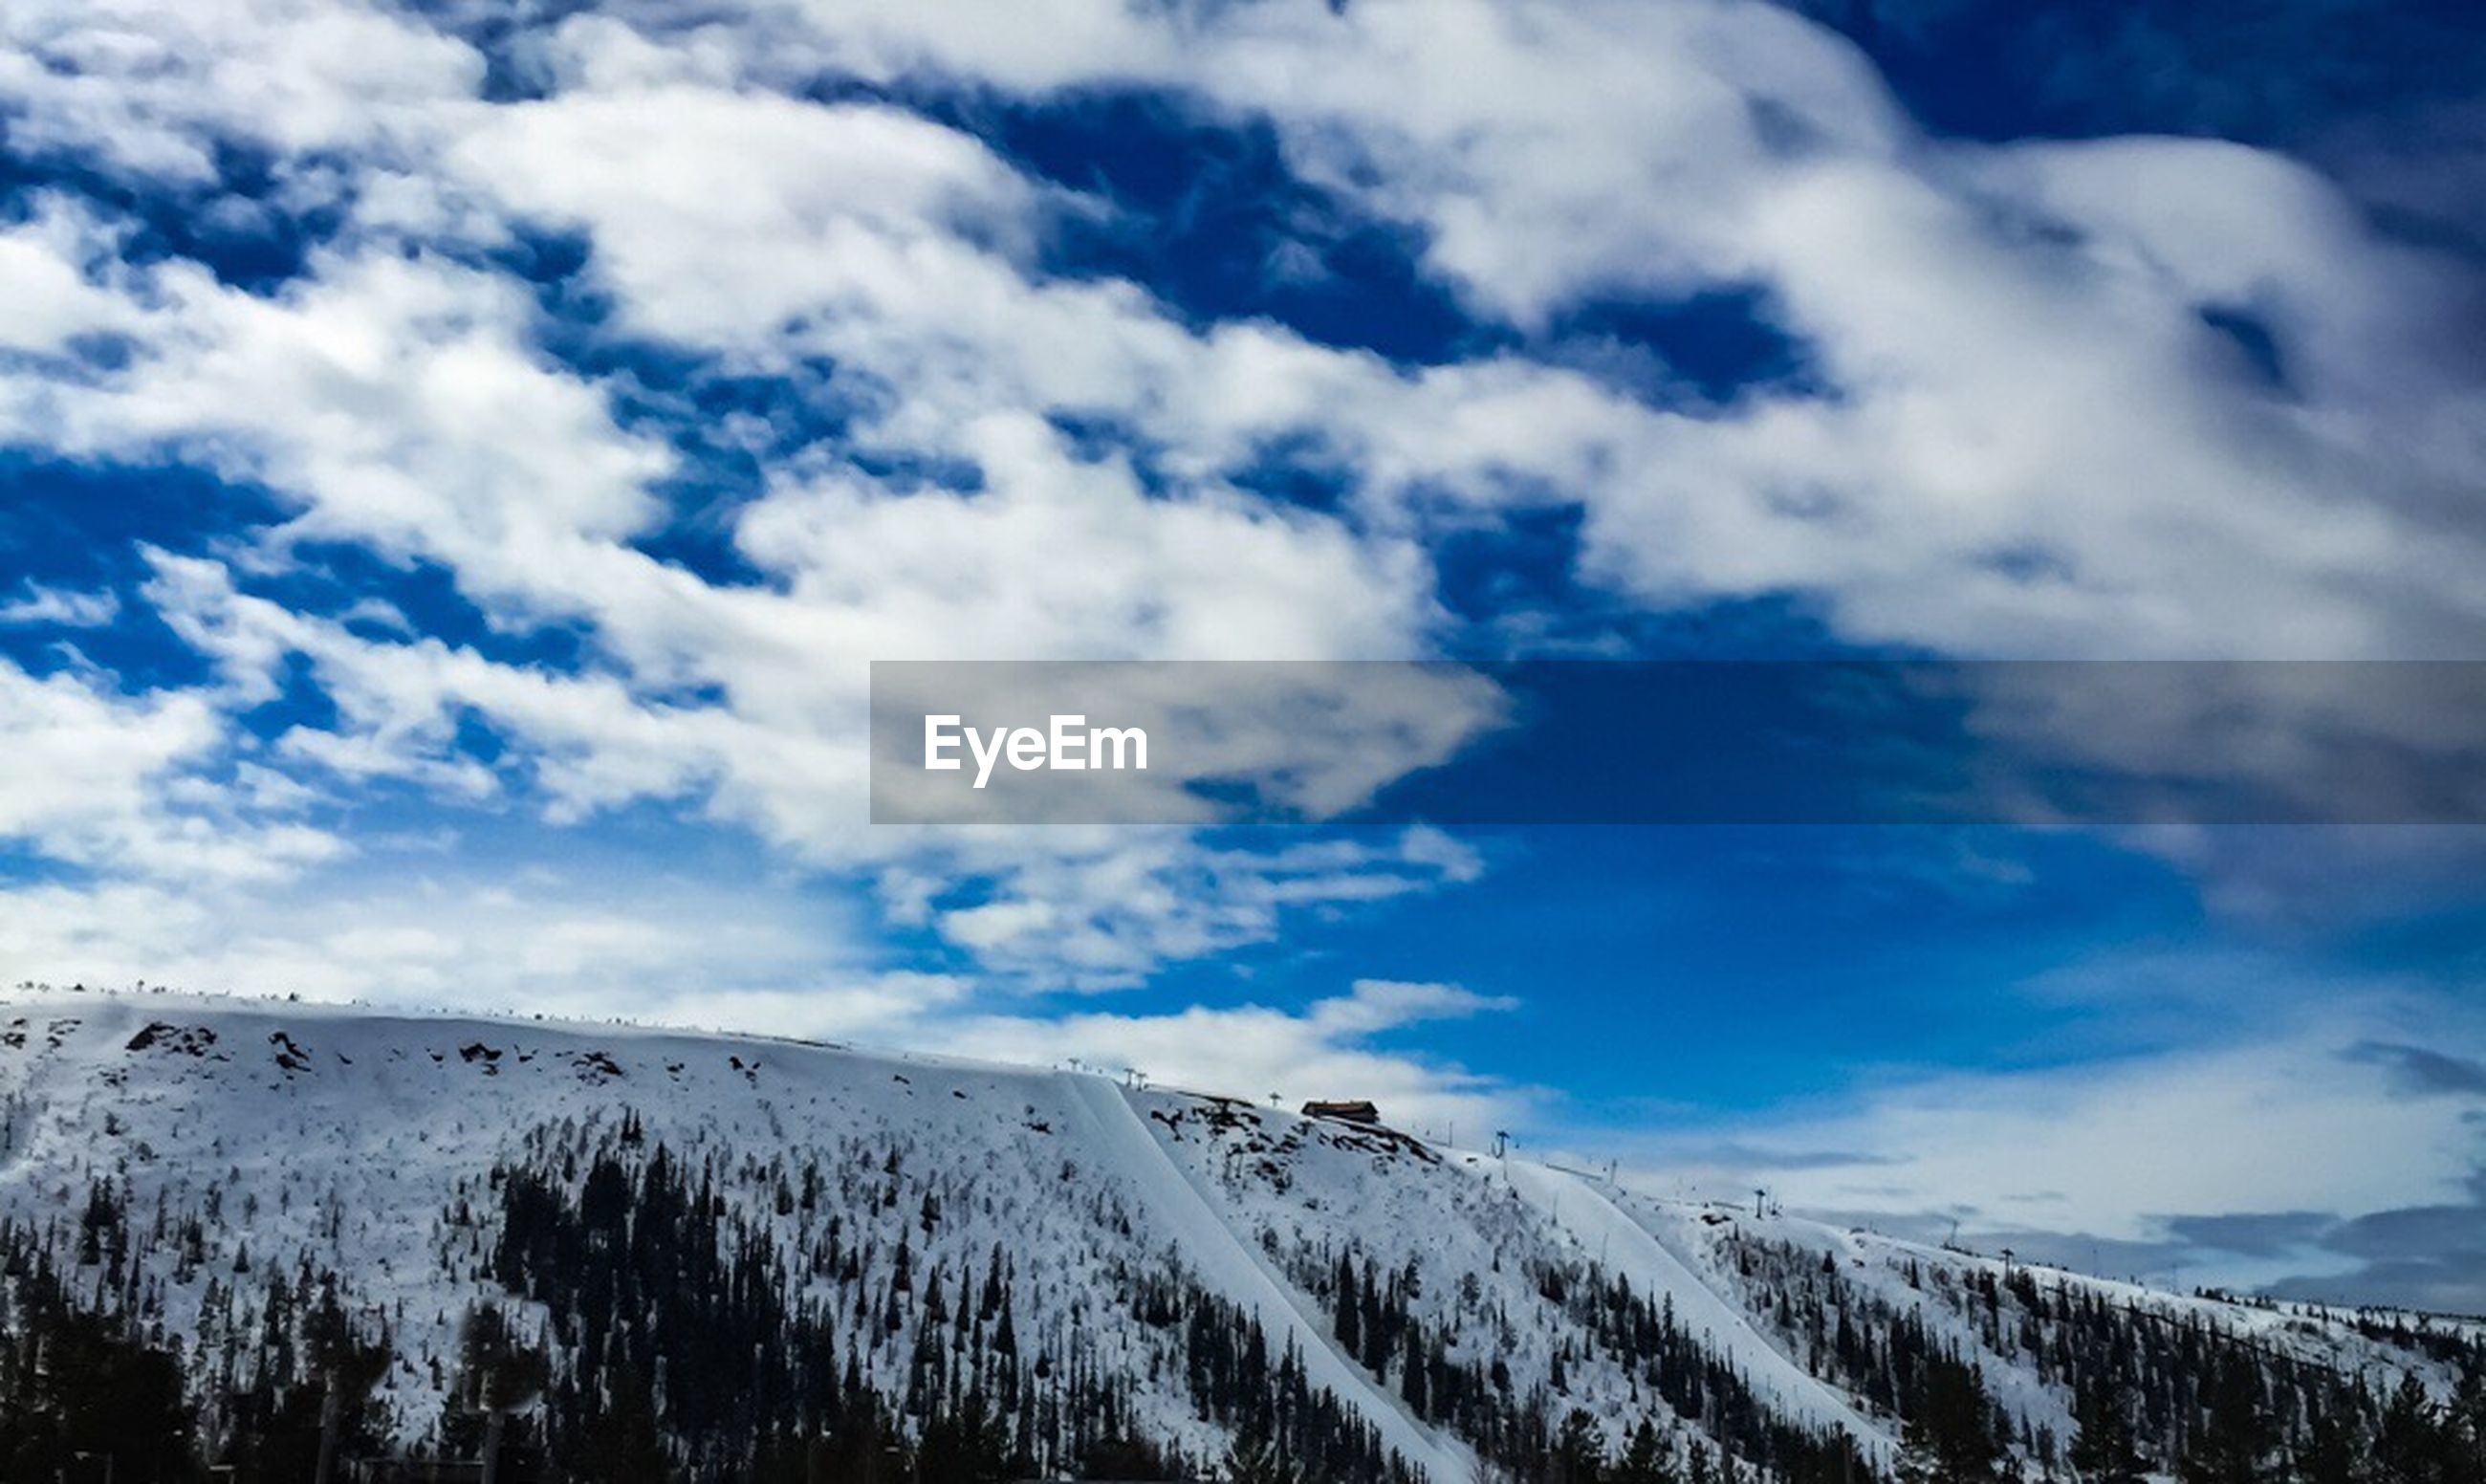 sky, tranquility, tranquil scene, snow, cloud - sky, winter, scenics, cold temperature, beauty in nature, landscape, nature, cloud, cloudy, weather, white color, blue, low angle view, day, outdoors, non-urban scene